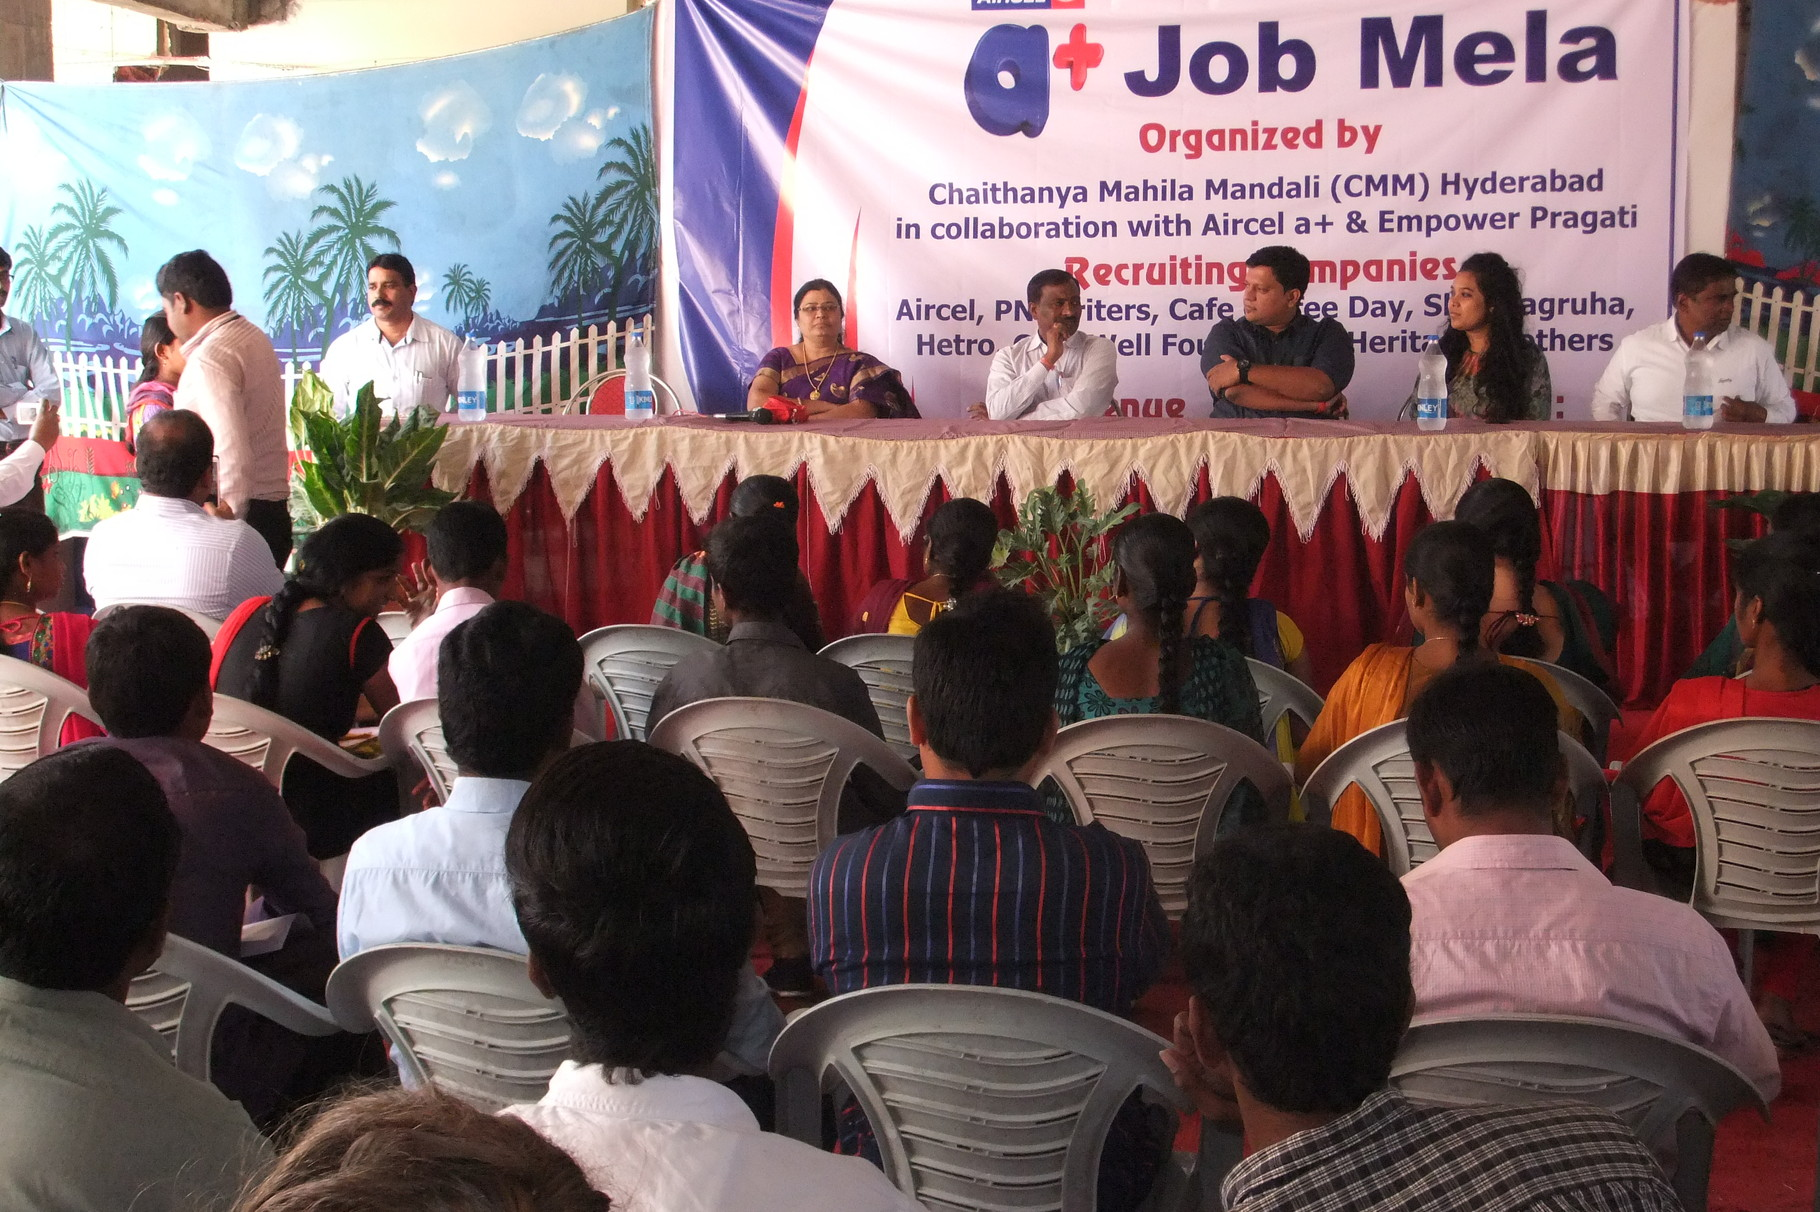 JOB Mela organized for the Unemployed Youth in partnership with Aircel Cellular Ltd at Shamshabad,Hyderabad